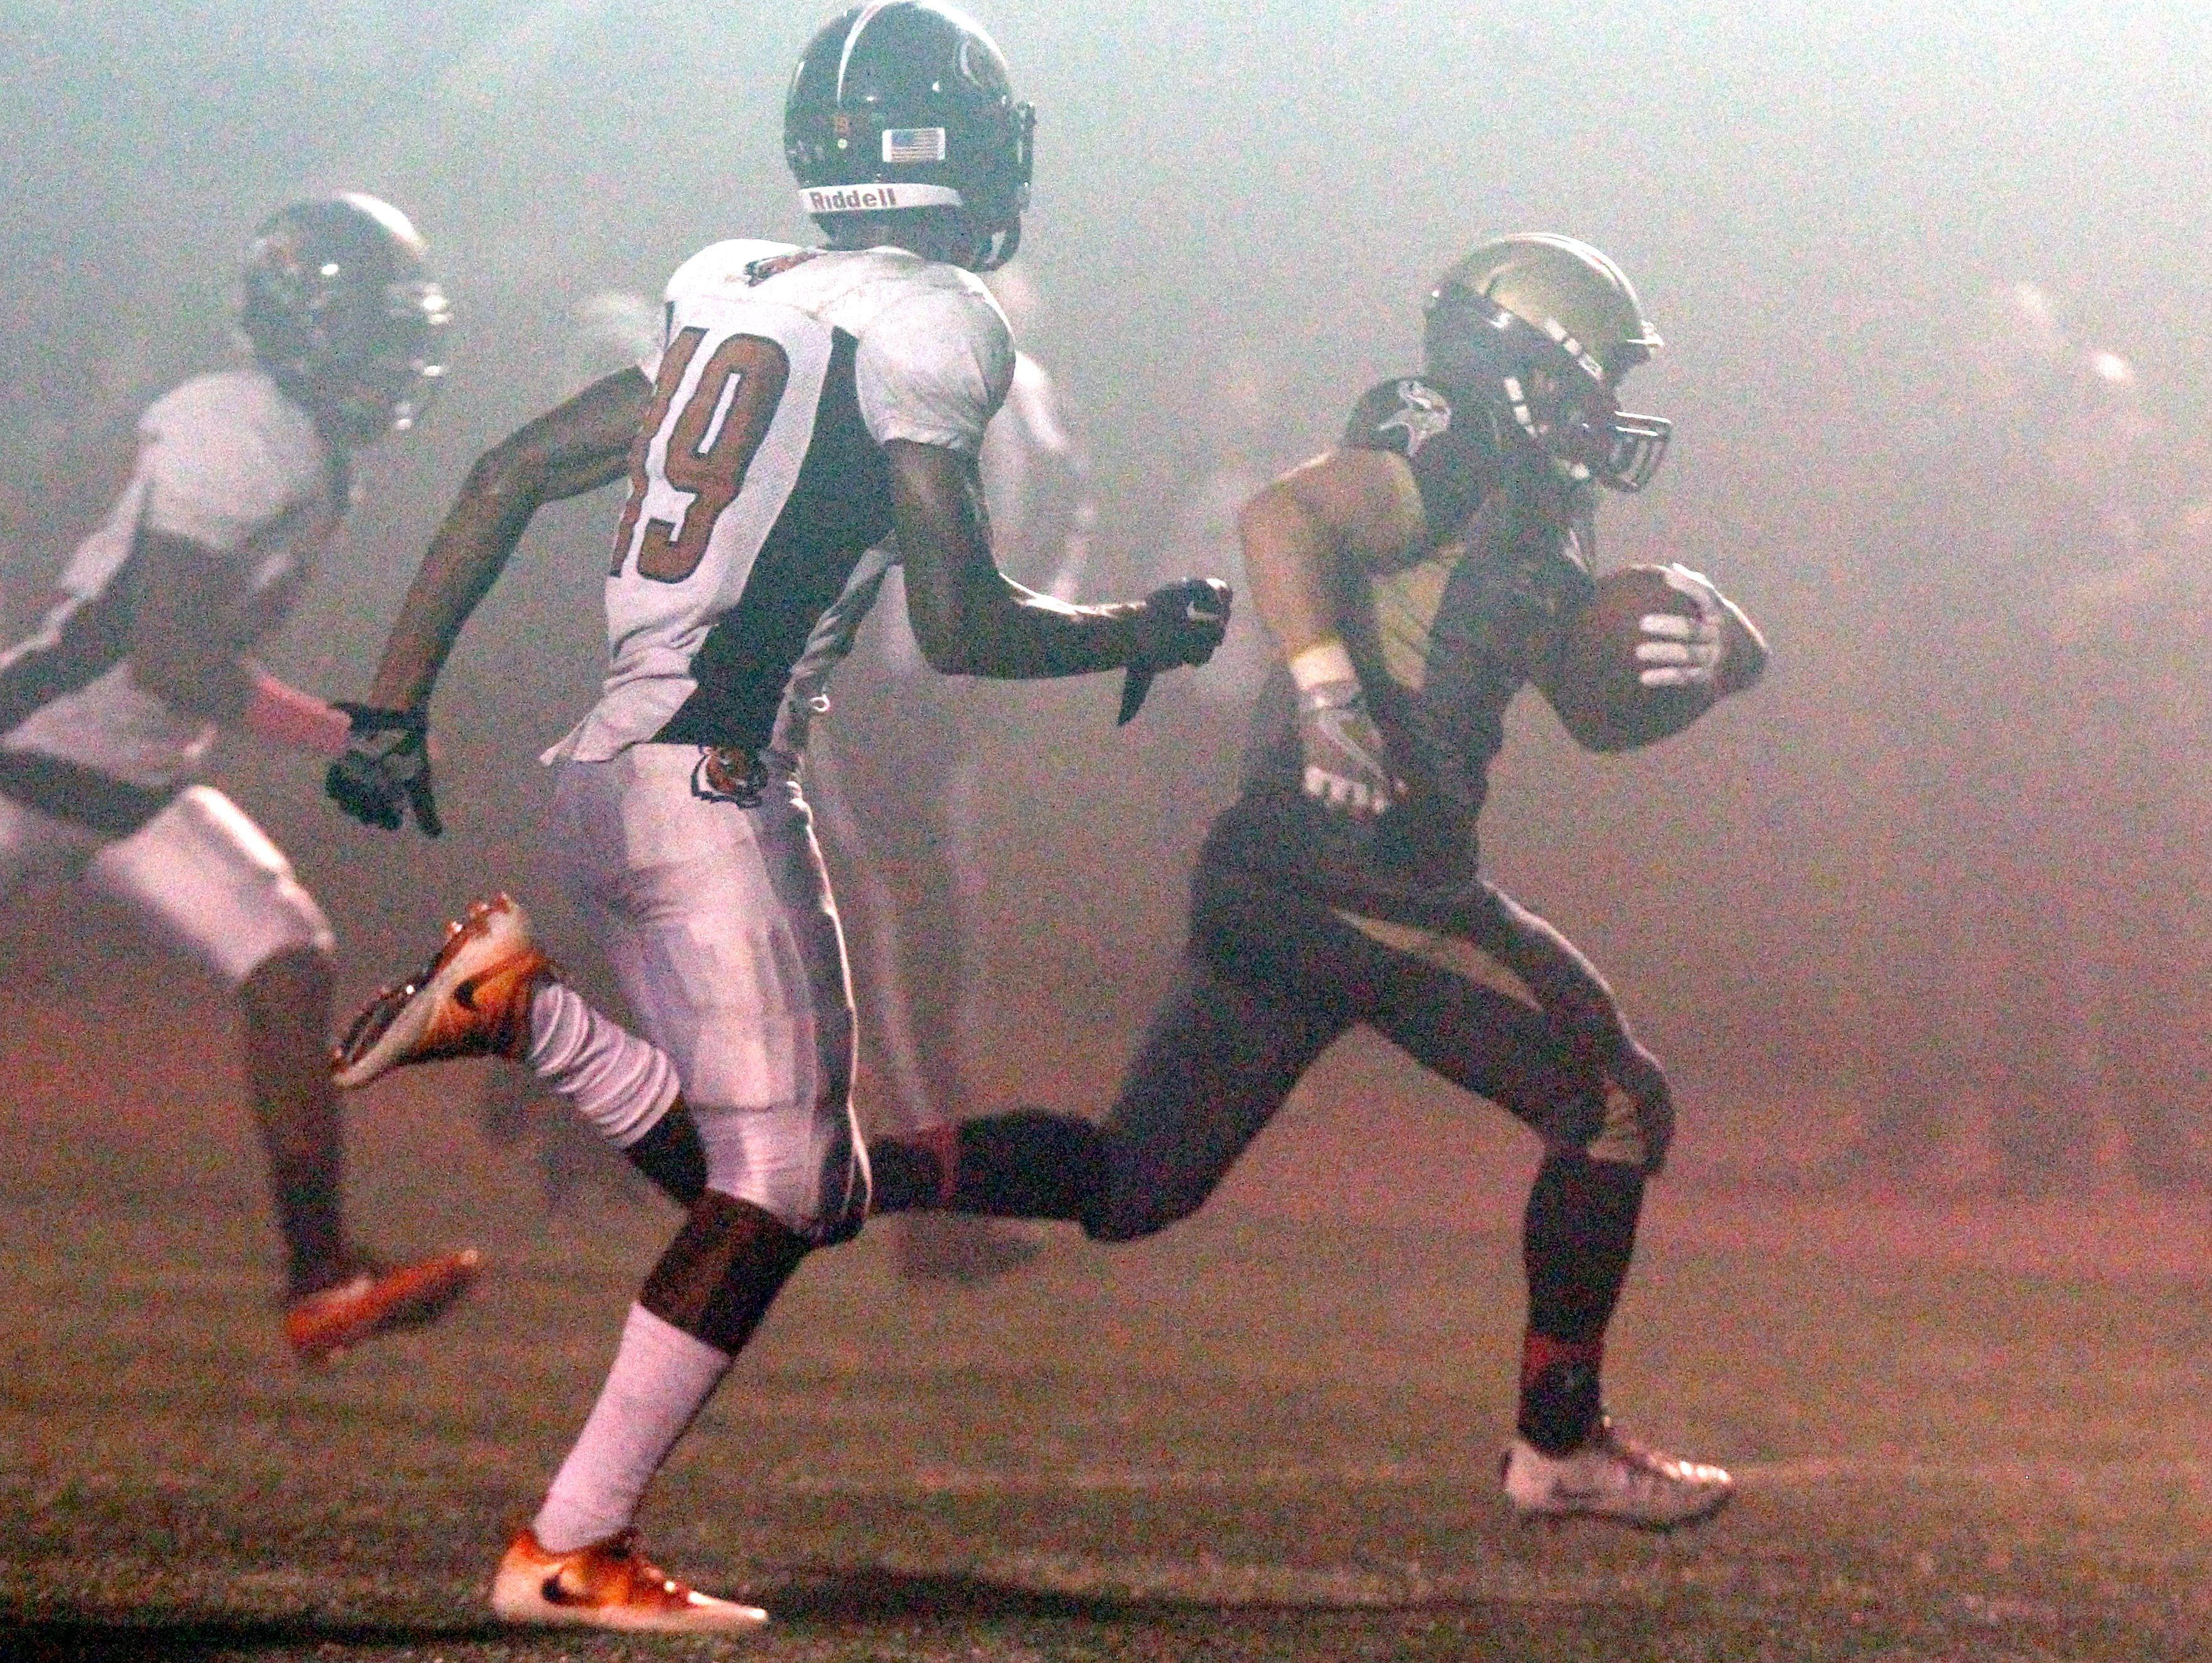 Clarkstown South's Ryan Thomas runs through the fog for a touchdown during a Class AA football quarterfinal with Spring Valley at Clarkstown South Oct. 21, 2016.